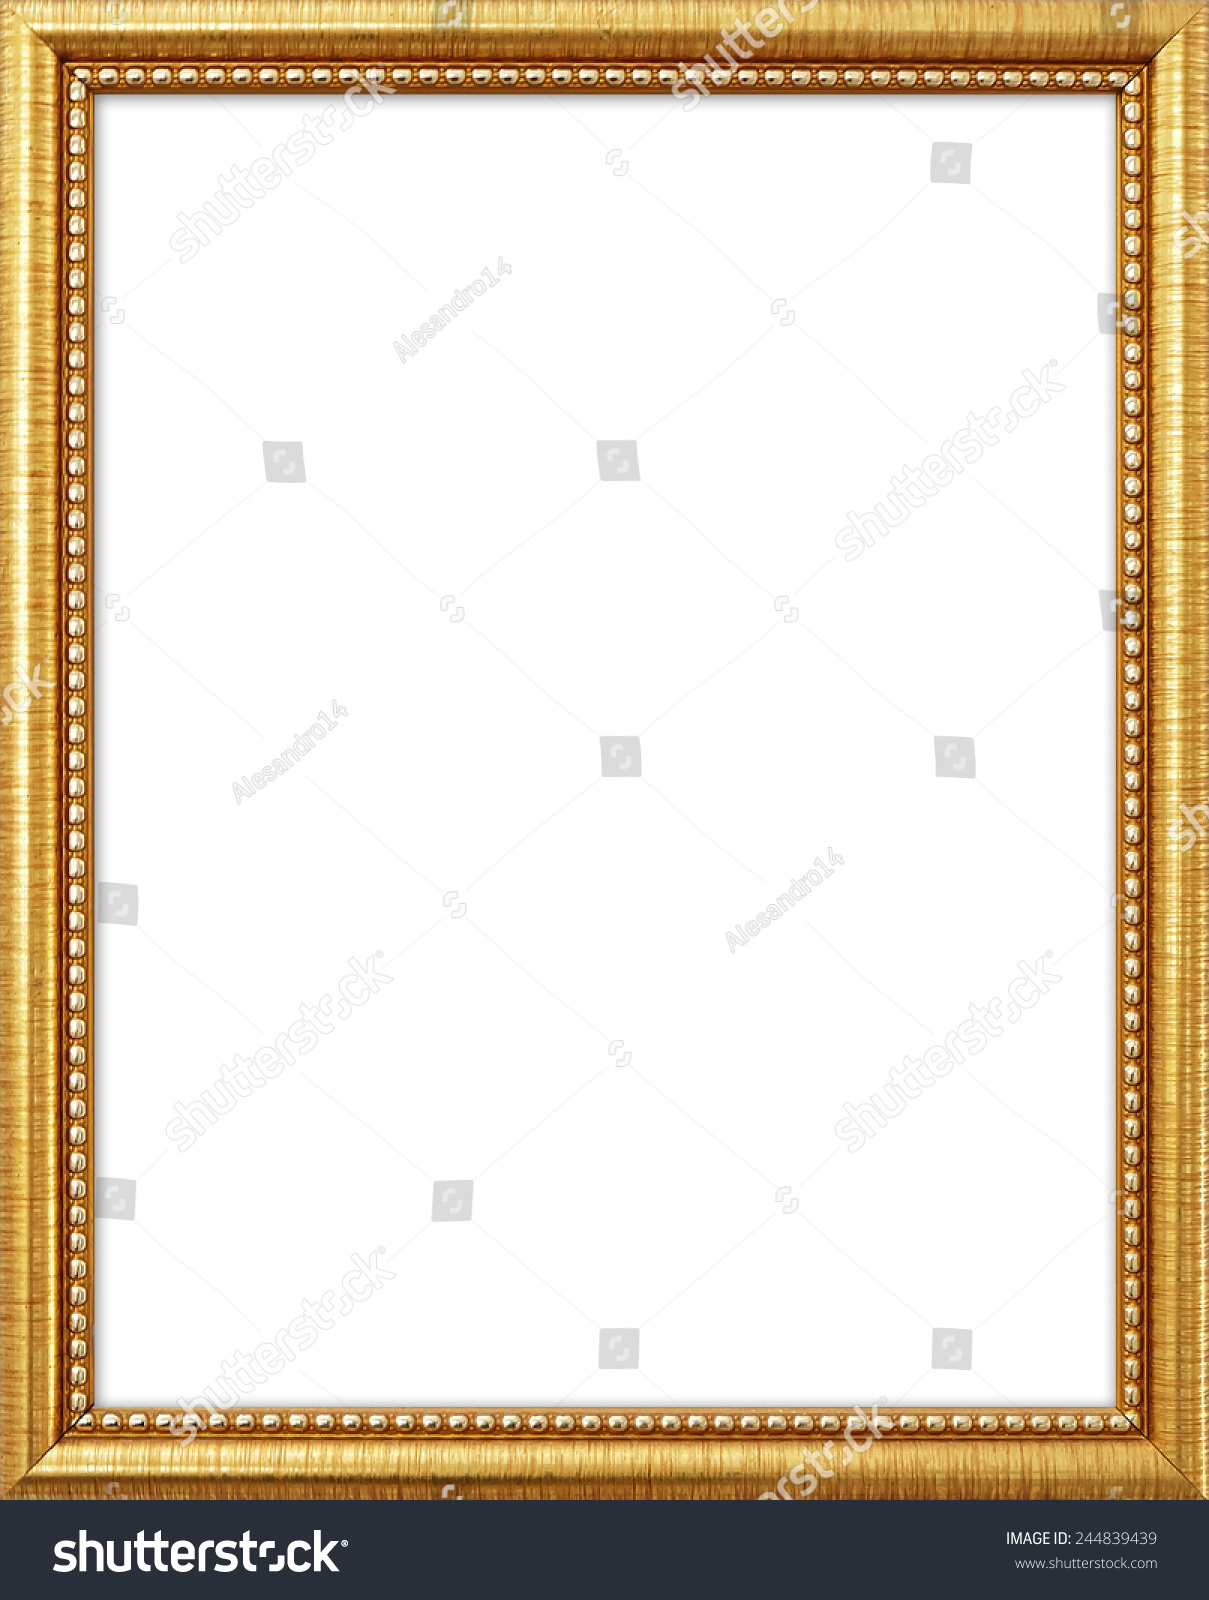 gold frame goldgilded arts and crafts pattern picture frame isolated on white